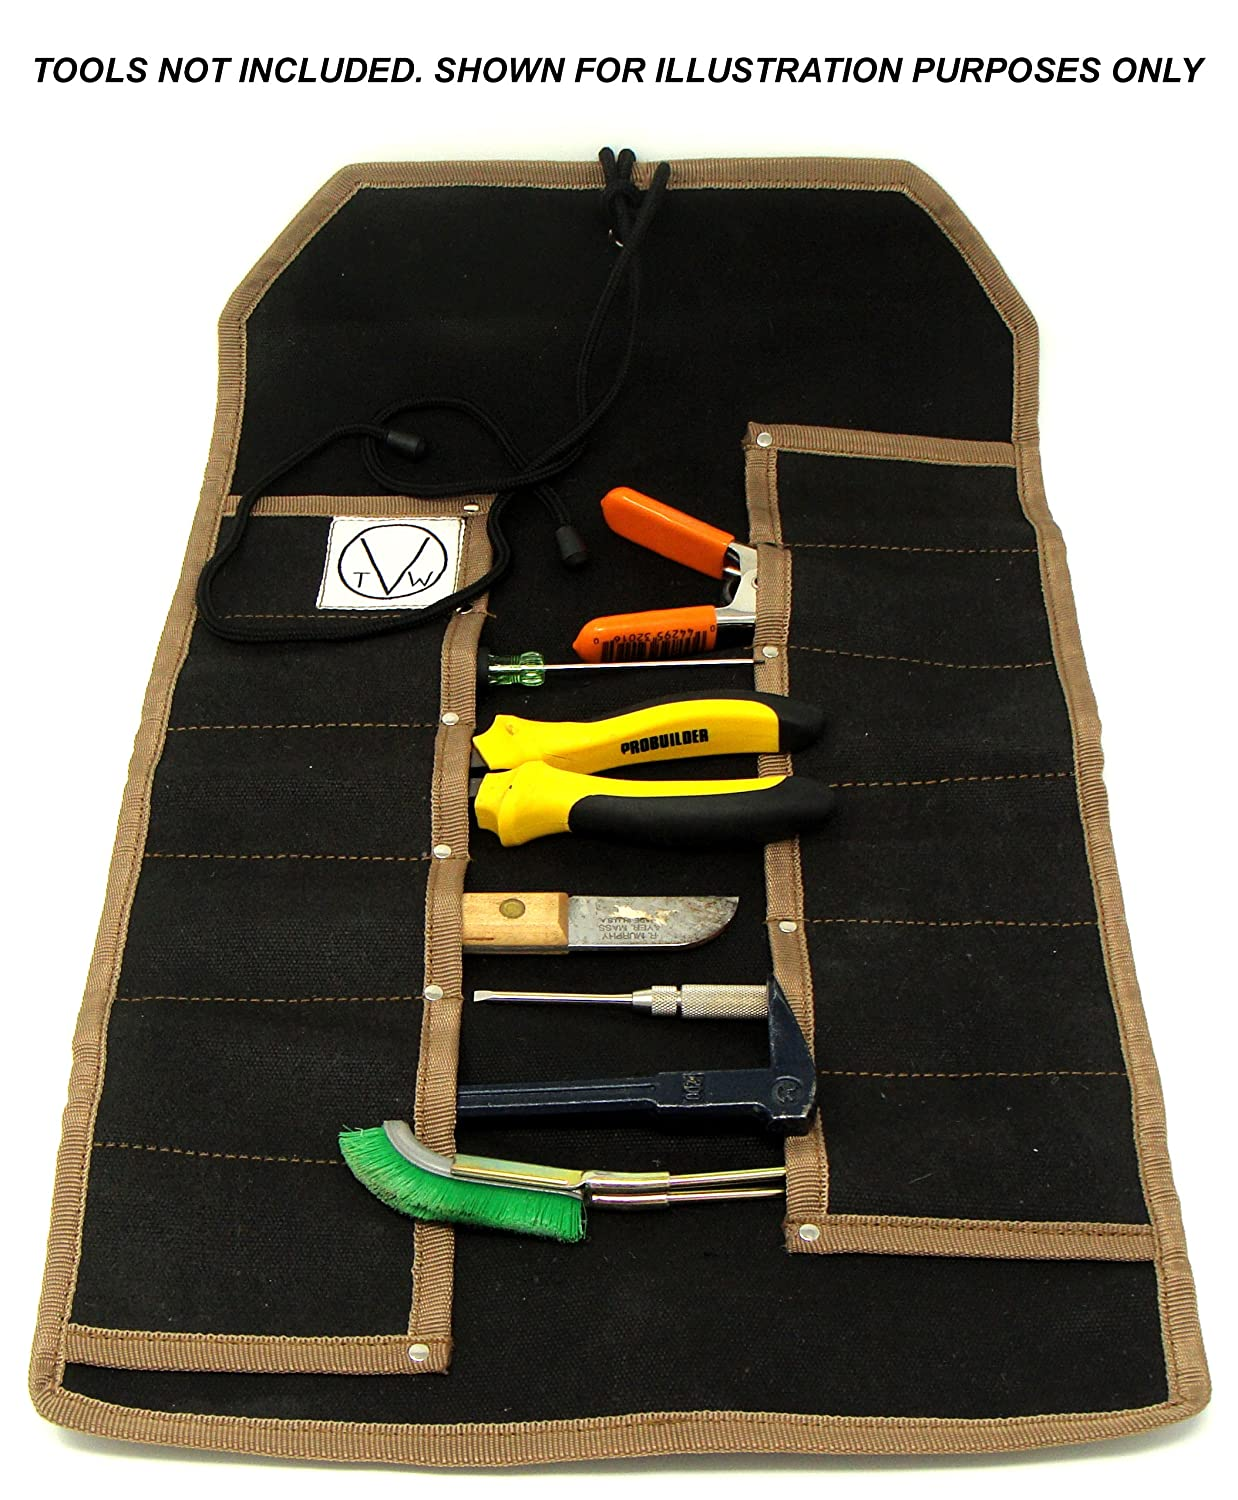 12 Pocket Waxed Canvas Tool Roll for Medium Sized Tools  For